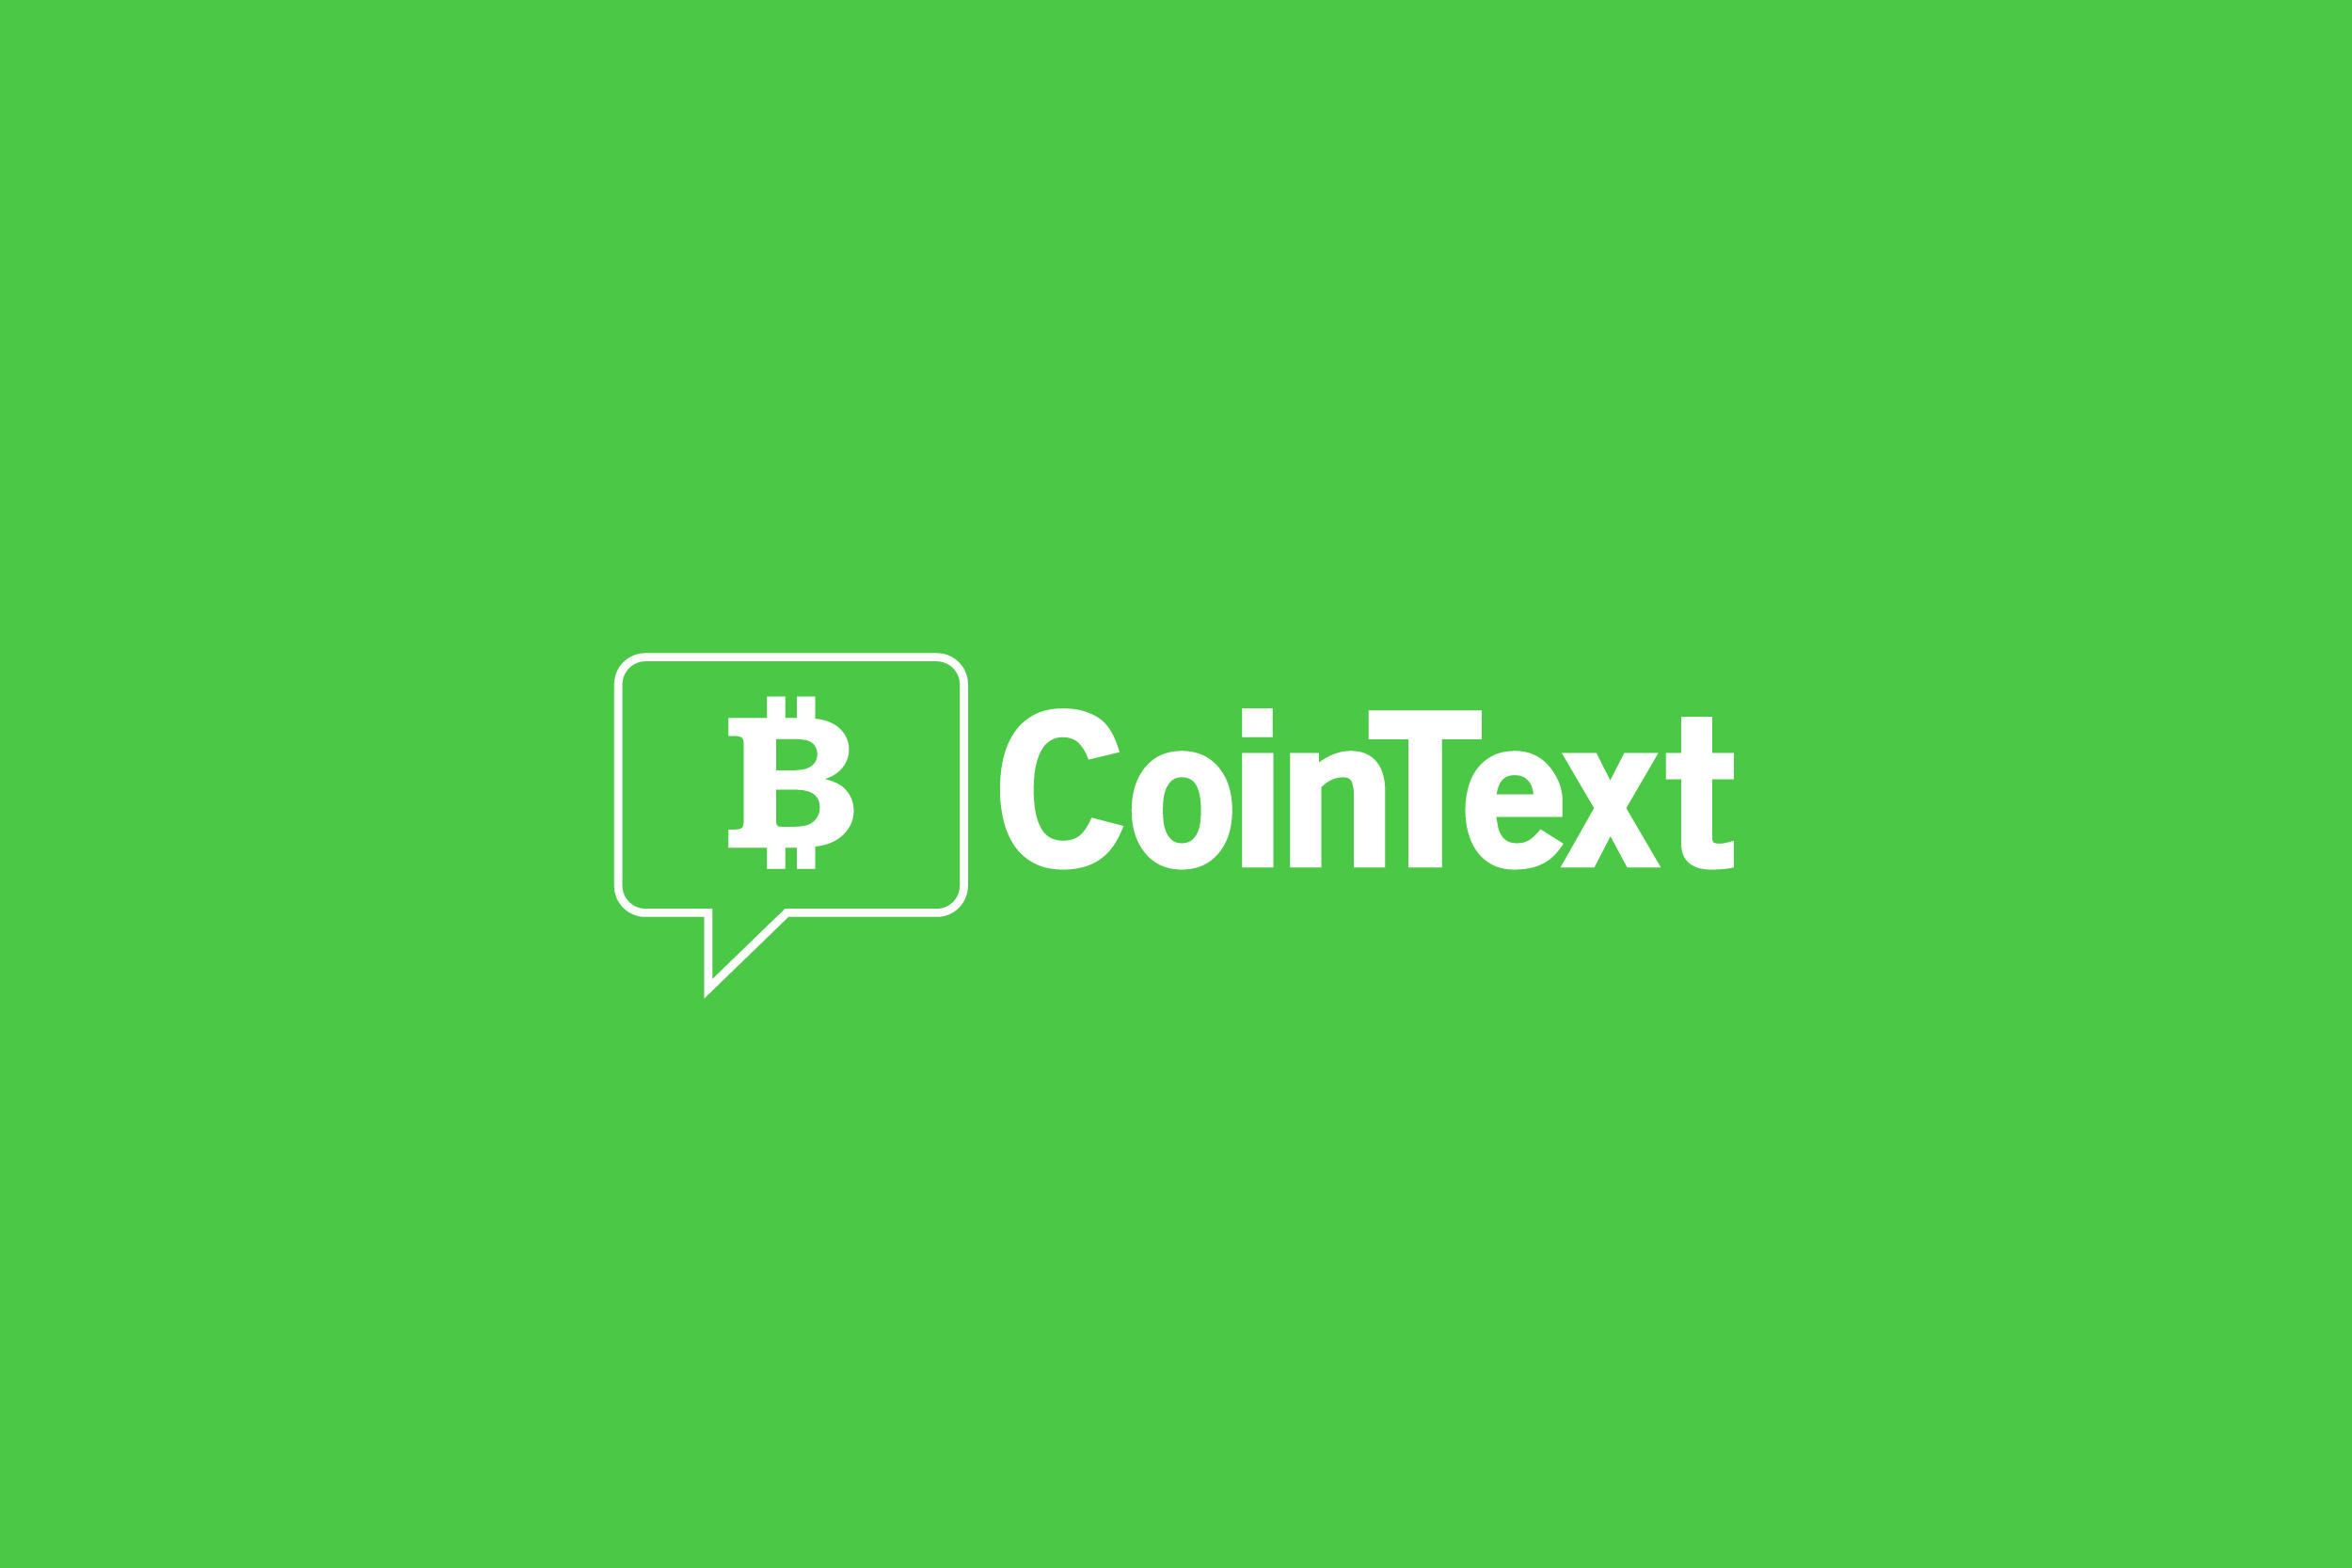 Cointext Announces Sms Bitcoin Cash Wallet To Transact Bch Without -